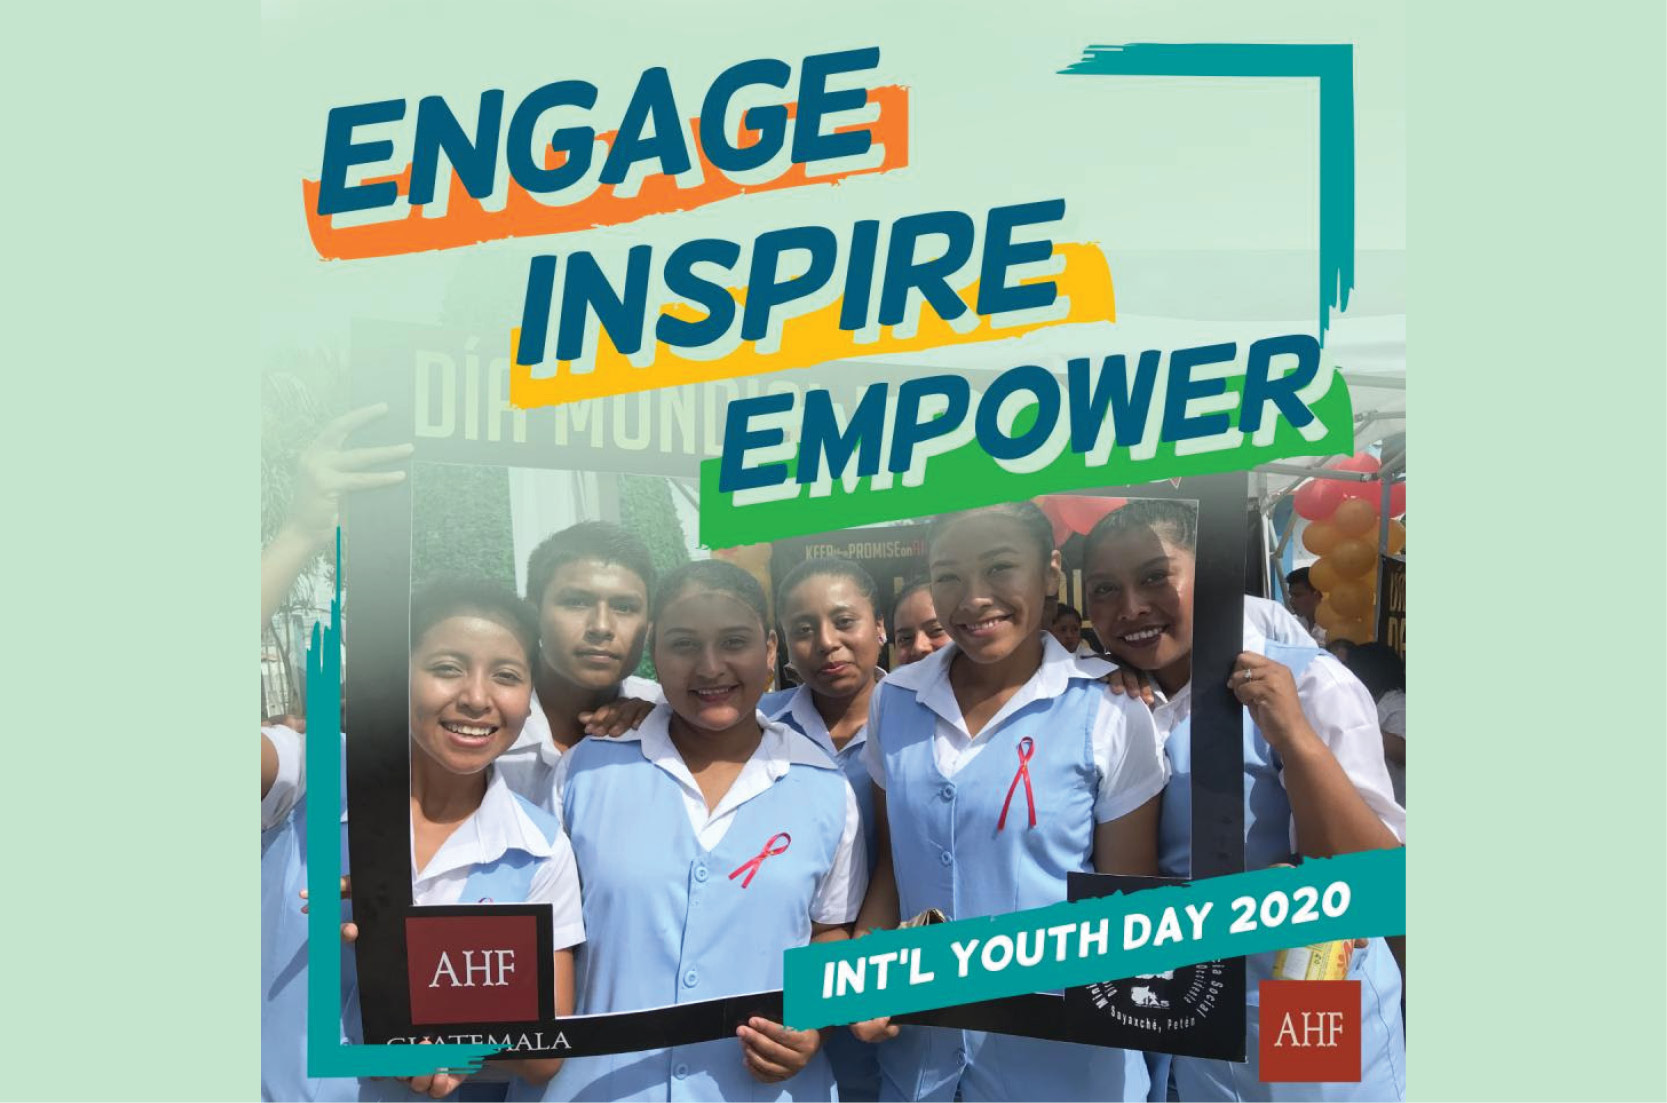 Engage, Inspire & Empower on International Youth Day 2020!